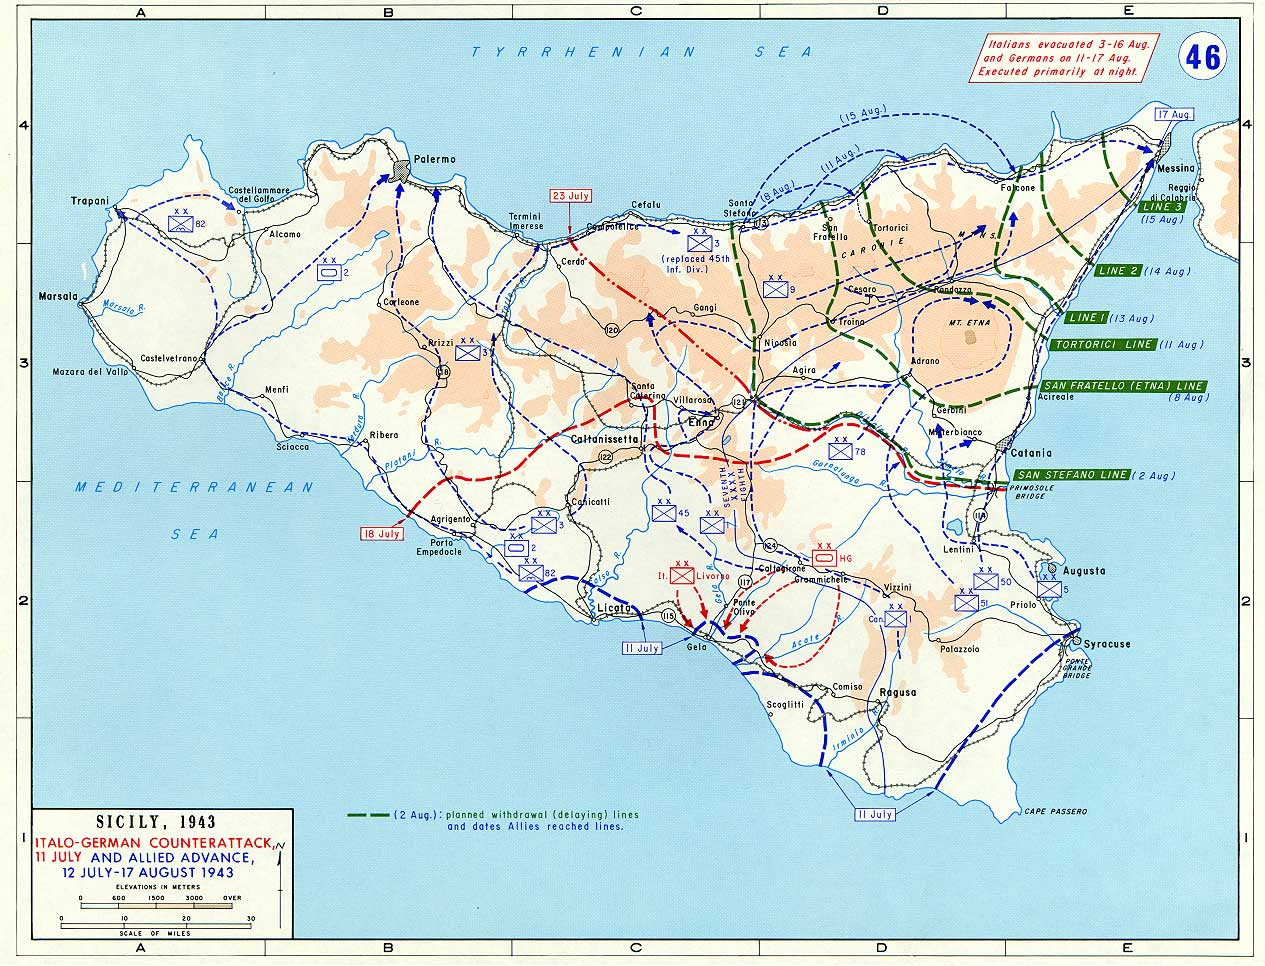 Map of German-Italian Counterattack on Sicily (July 1943)